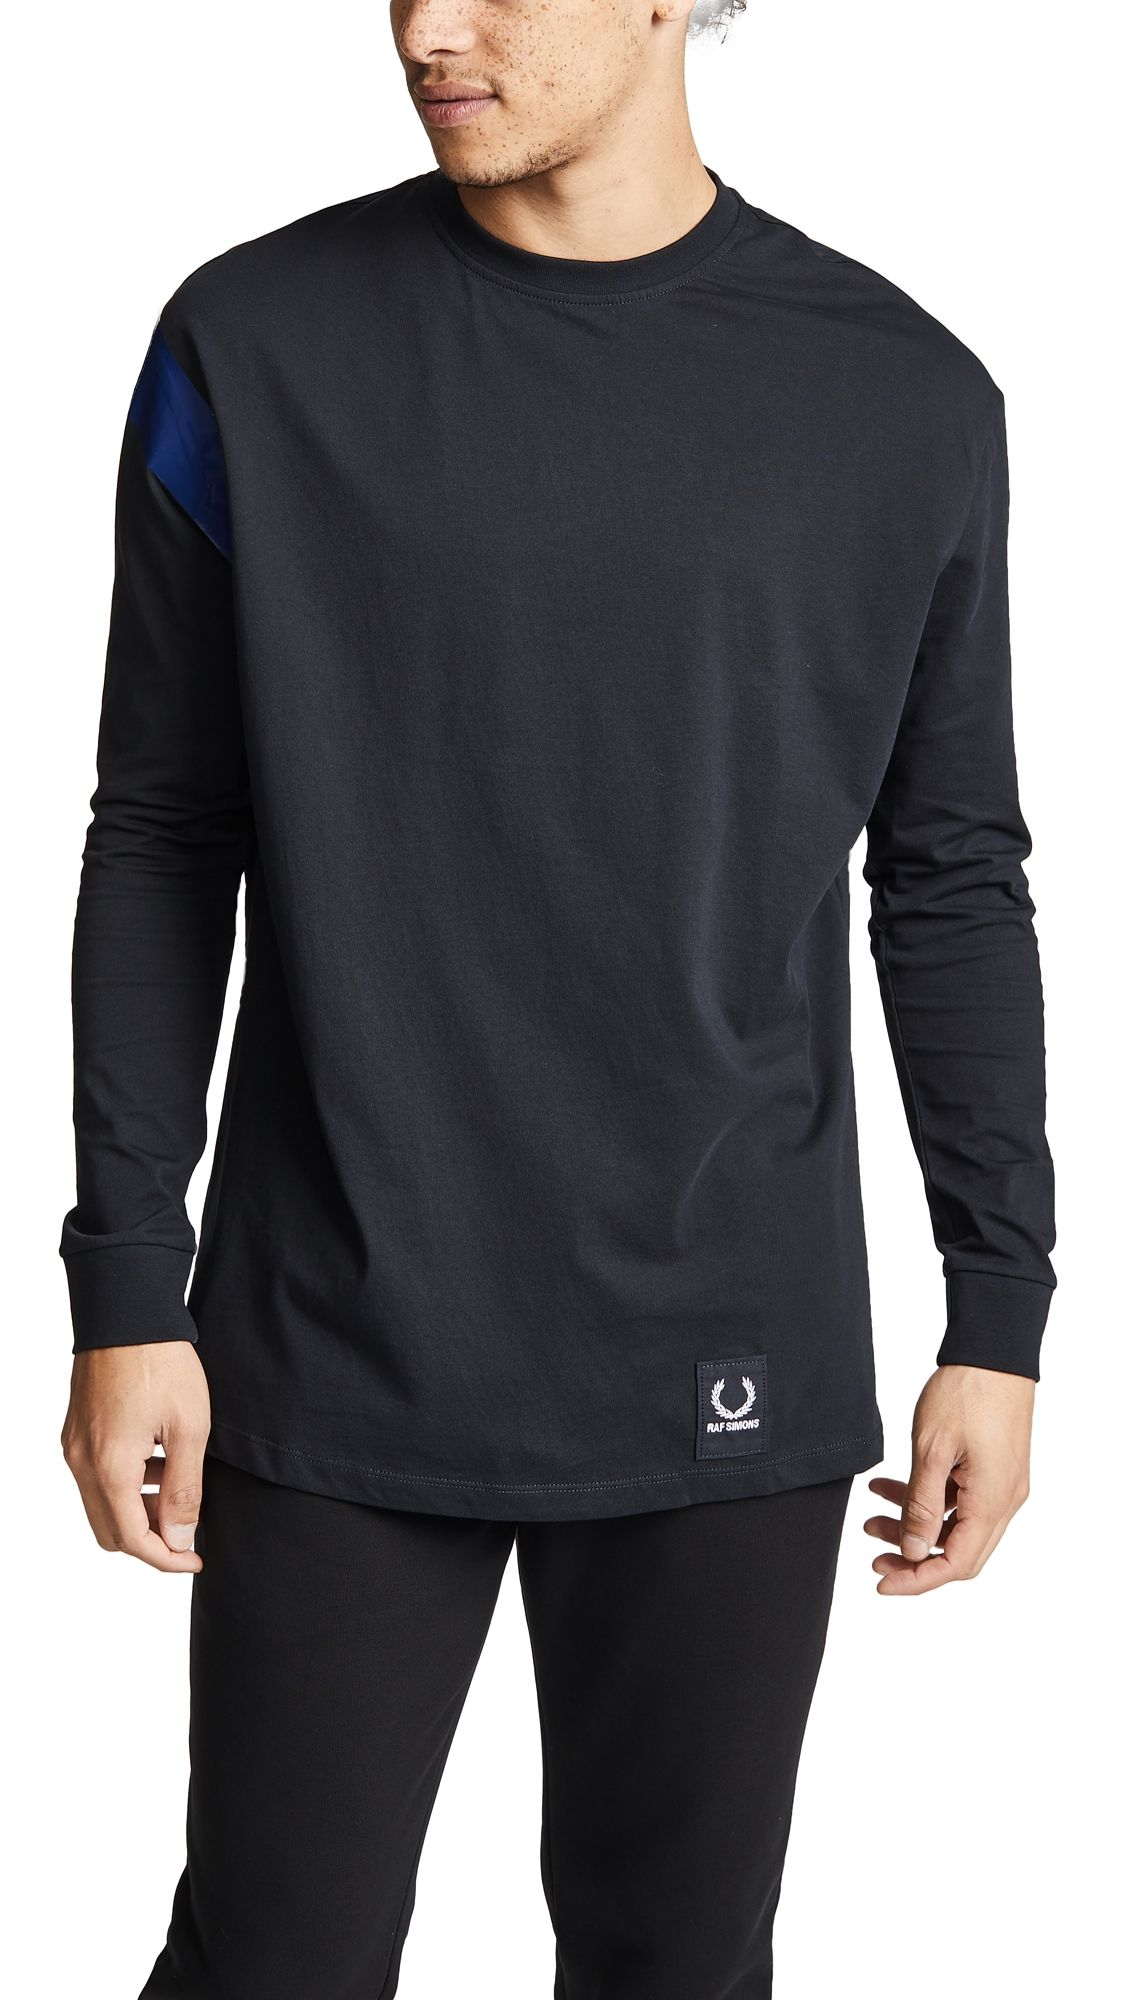 66ef7819 FRED PERRY LONG SLEEVE TAPE DETAIL T-SHIRT. #fredperry #cloth | Fred ...